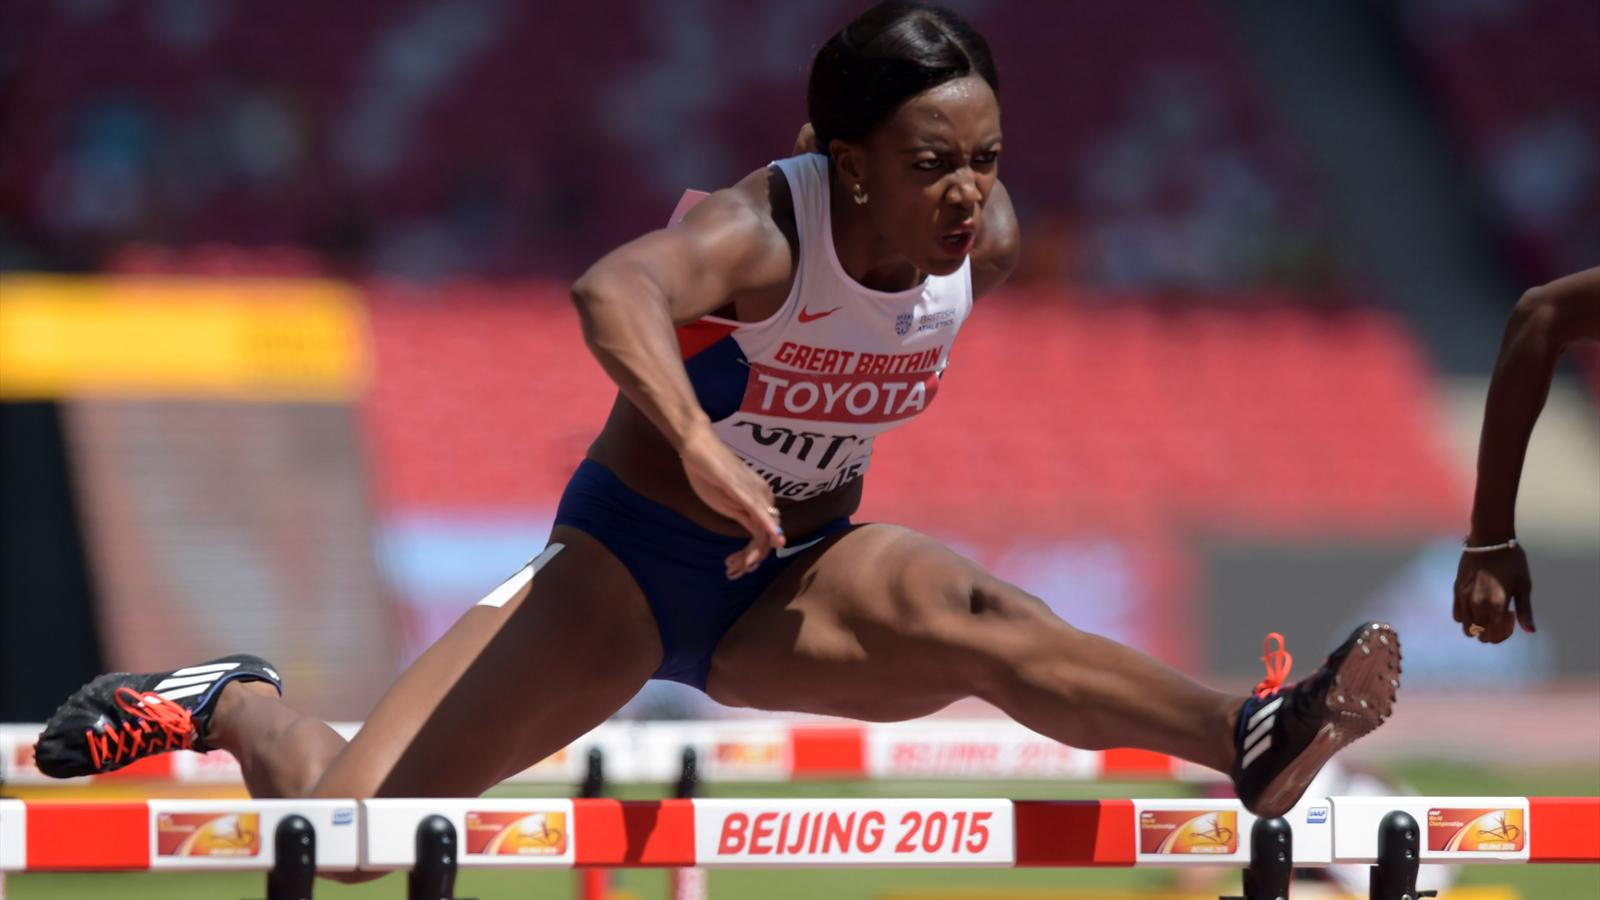 Day seven schedule and medal events: Can Tiffany Porter claim a medal in the 100m hurdles ...